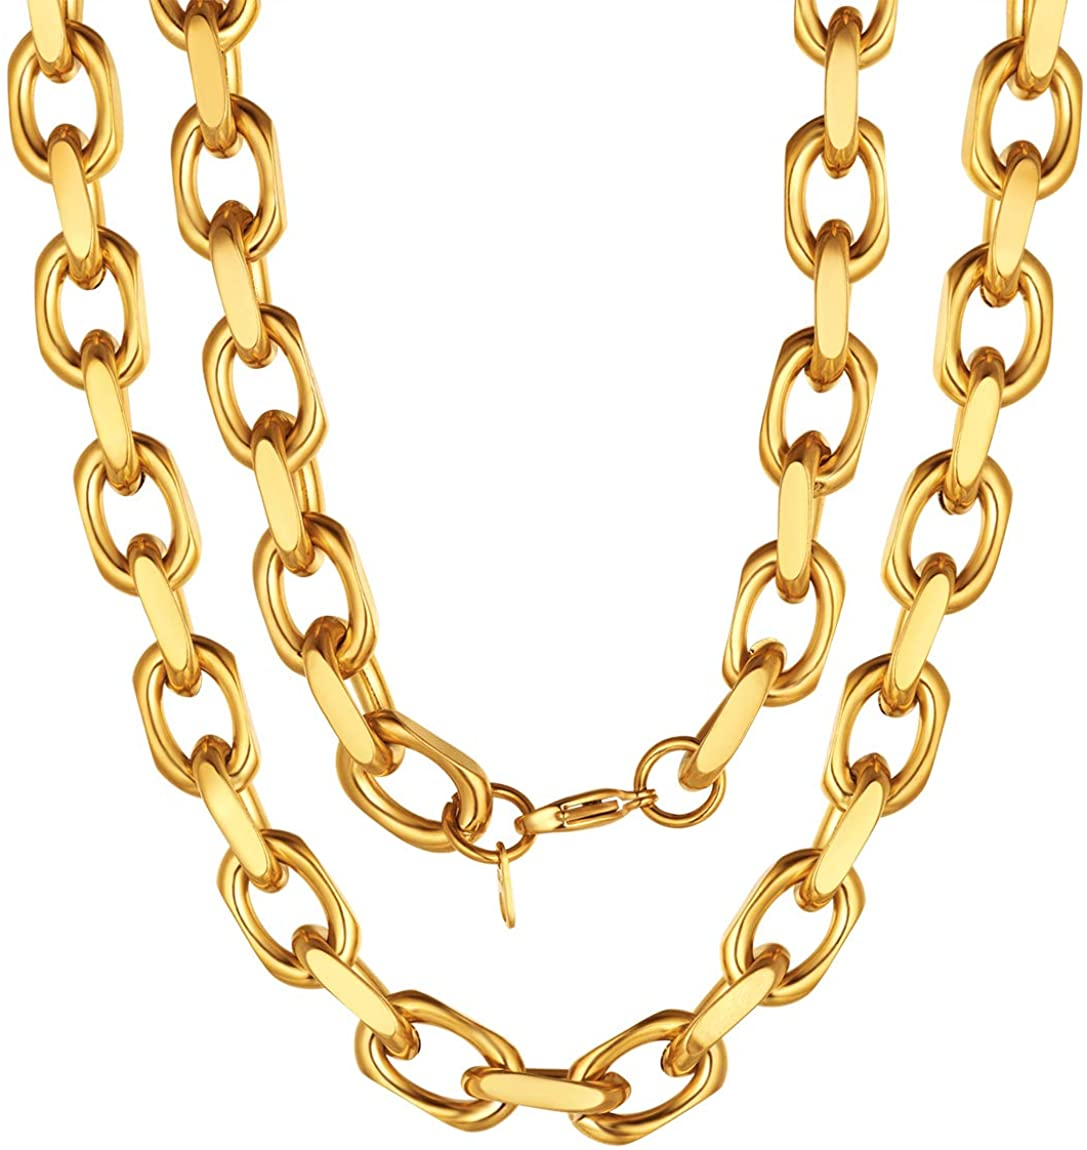 ChainsPro Heavy Duty Oval Rolo Cable Chain Necklace